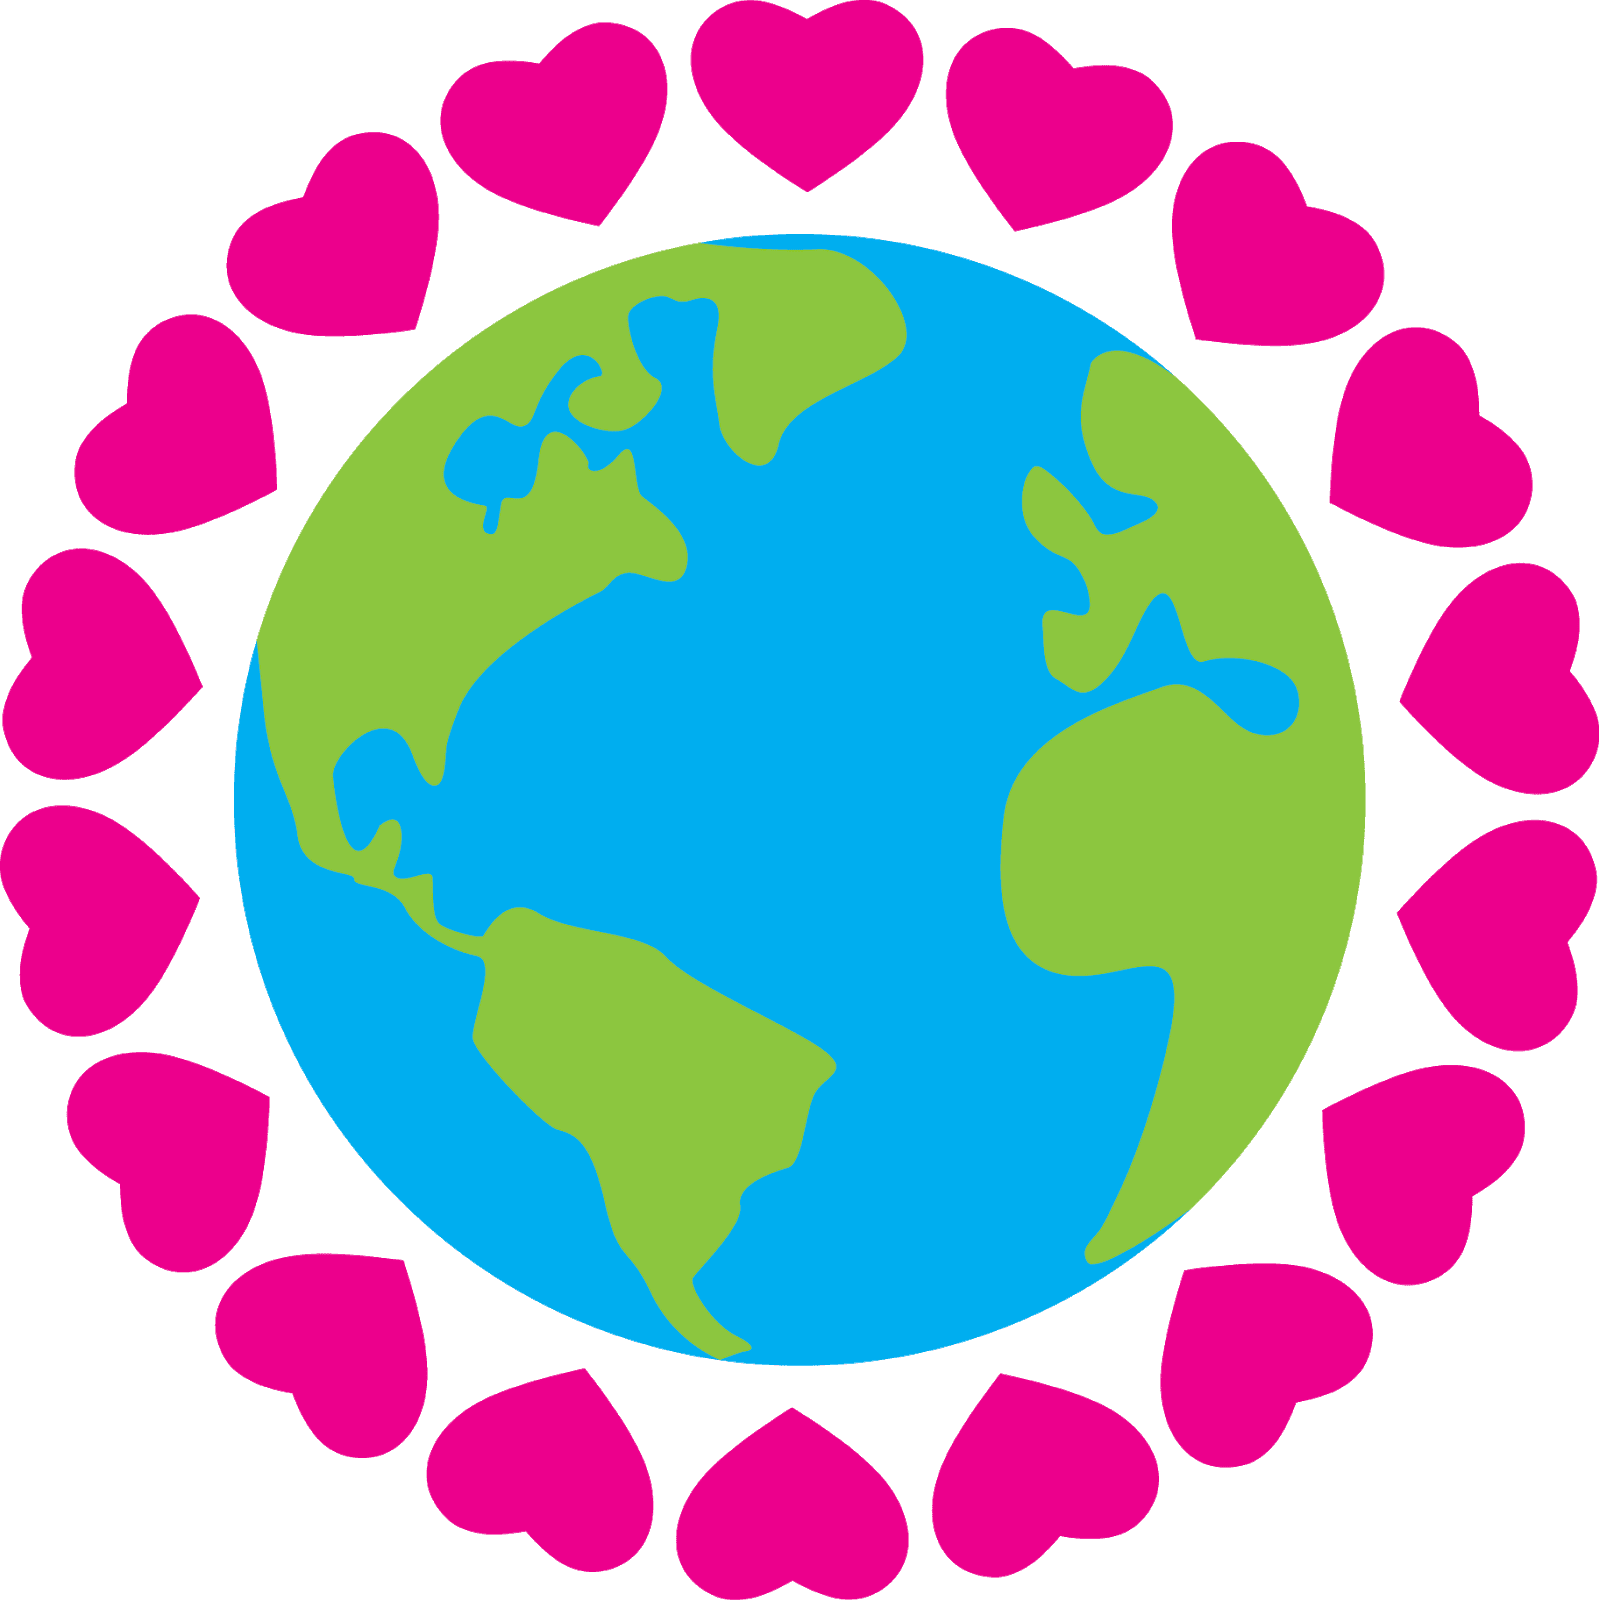 Transparent earth day clipart - Last But Not Least, I Made You Some Earth Day Clip - Revlon Colour Ball Shades